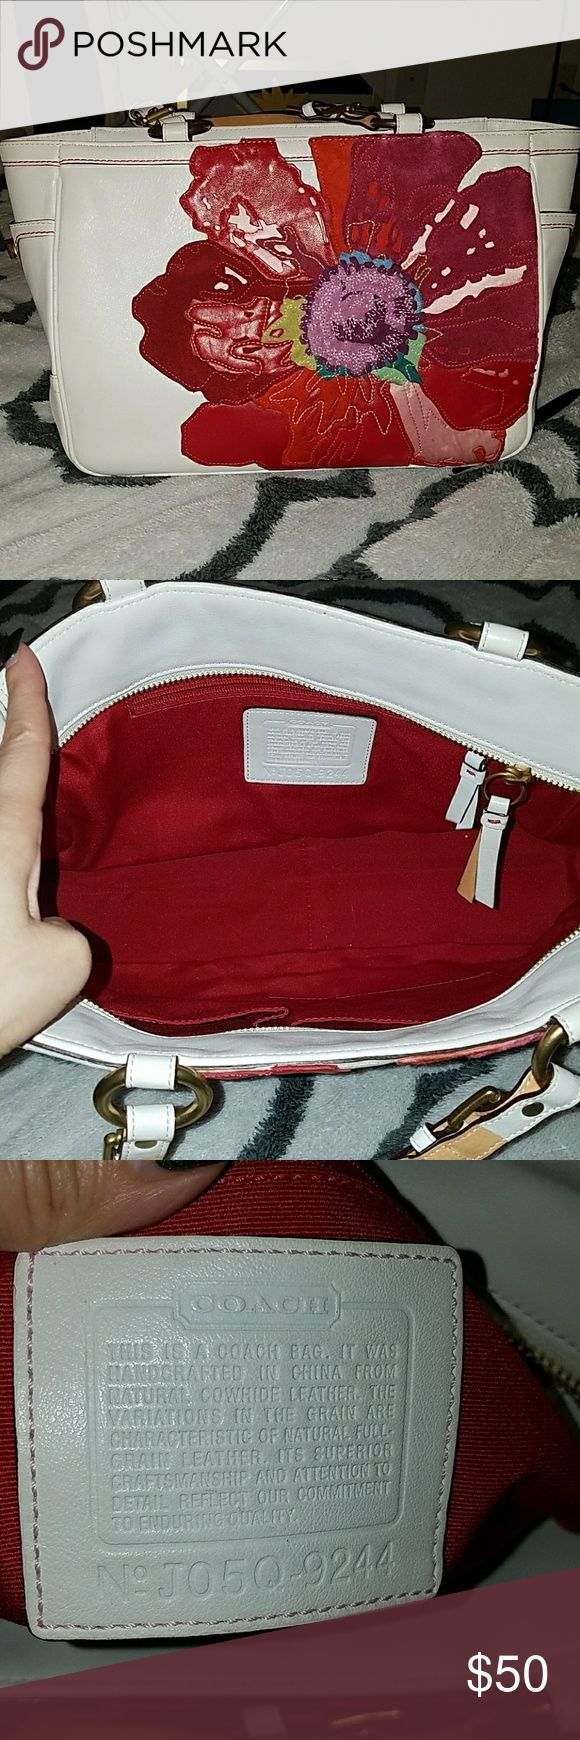 Coach Handbag White leather, Beautiful colorful suede floral design, red interior. Used, but well cared for. Coach Bags Satchels